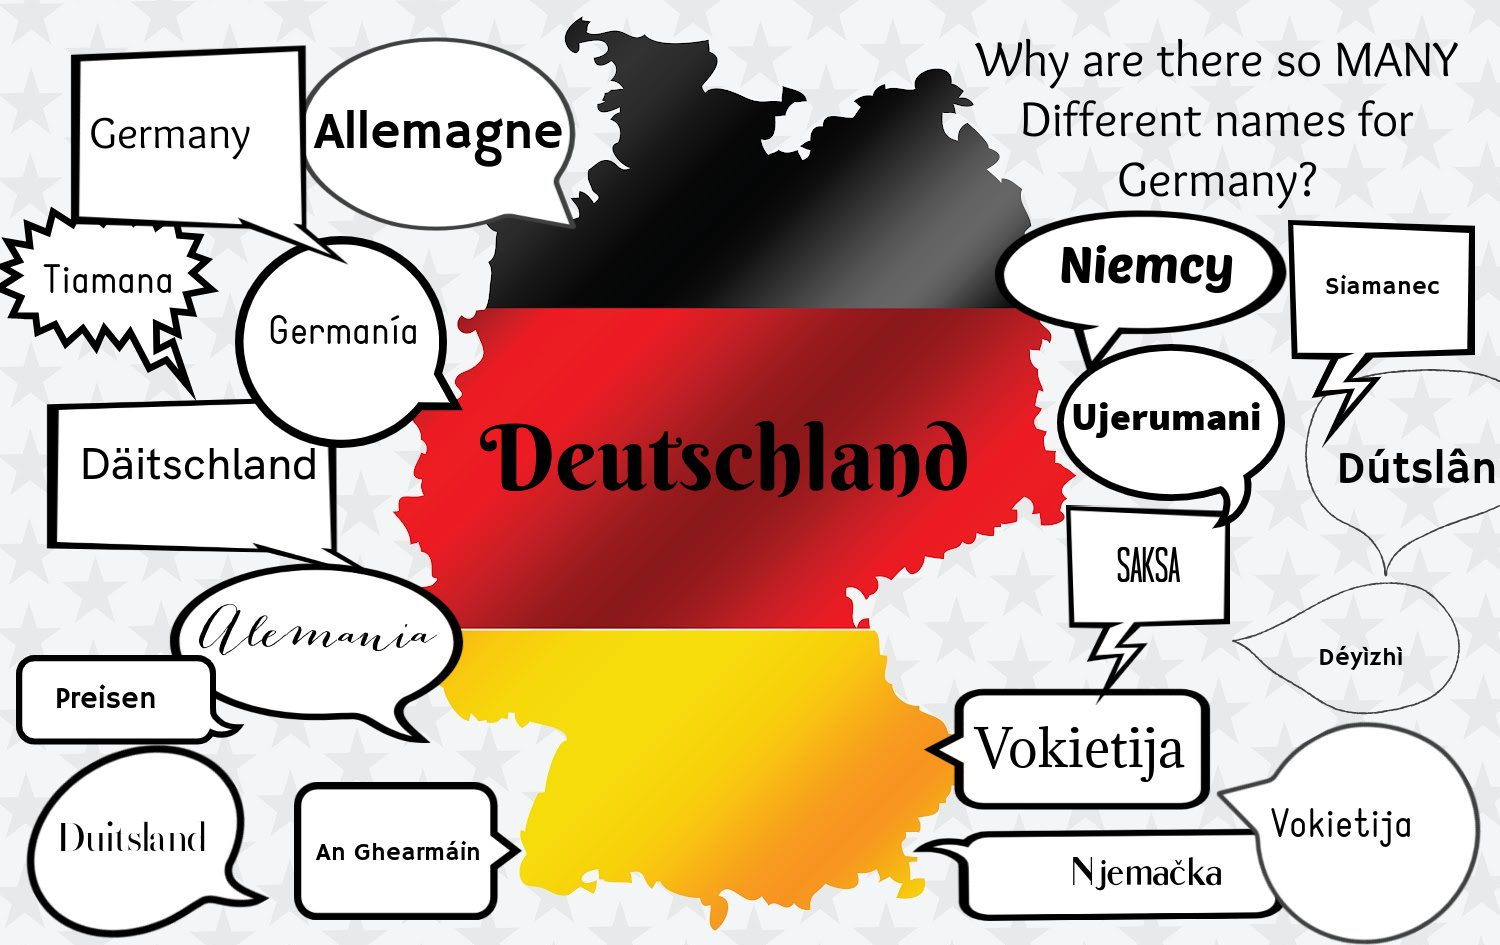 Why are there so MANY Different names for Germany?